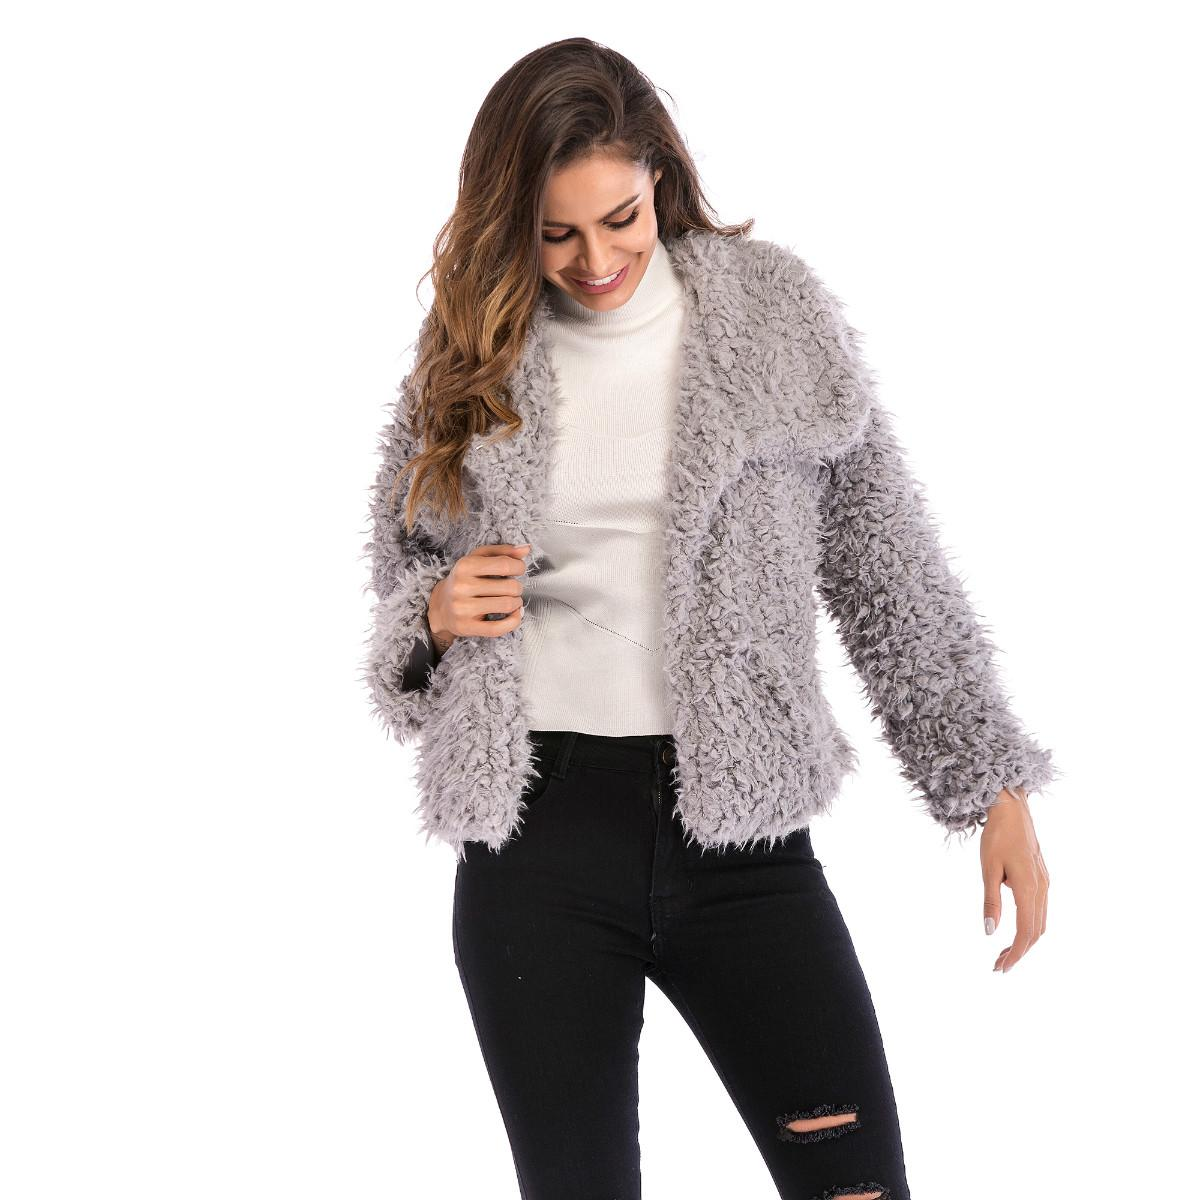 b23f747b2a6d6 2018 Winter Lapel Furry Coat Solid Color Women Warm Fashion Jacket Wild  Short Jacket Size S-2XL Women Jacket Jacket Women Clothes Online with   53.03 Piece ...